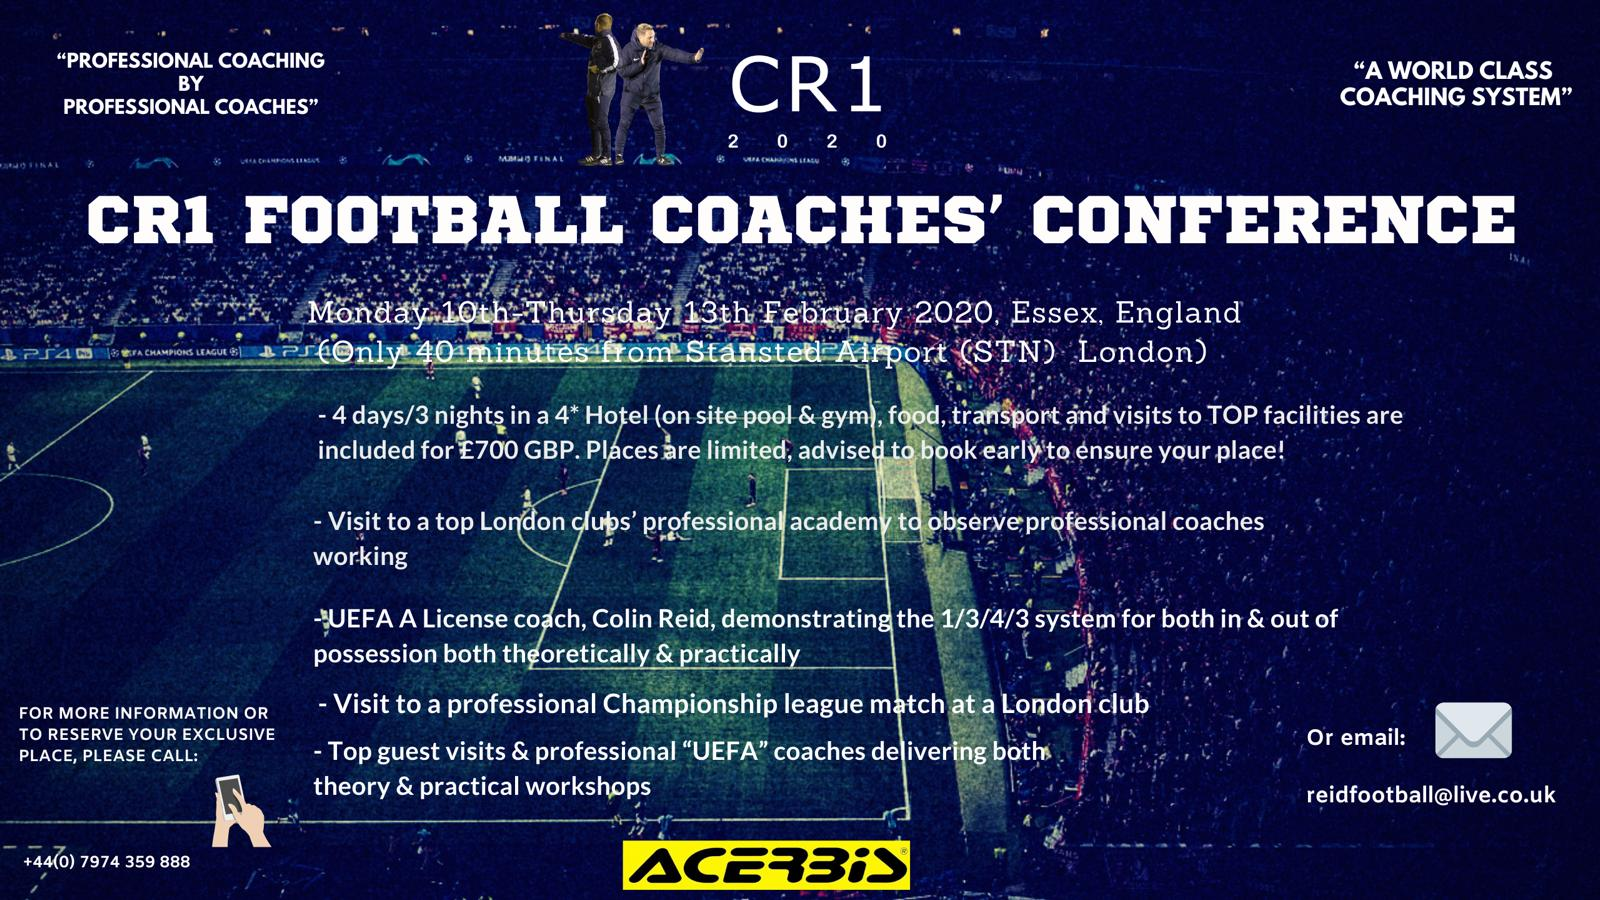 CR1 FOOTBALL COACHES' CONFERENCE 2020